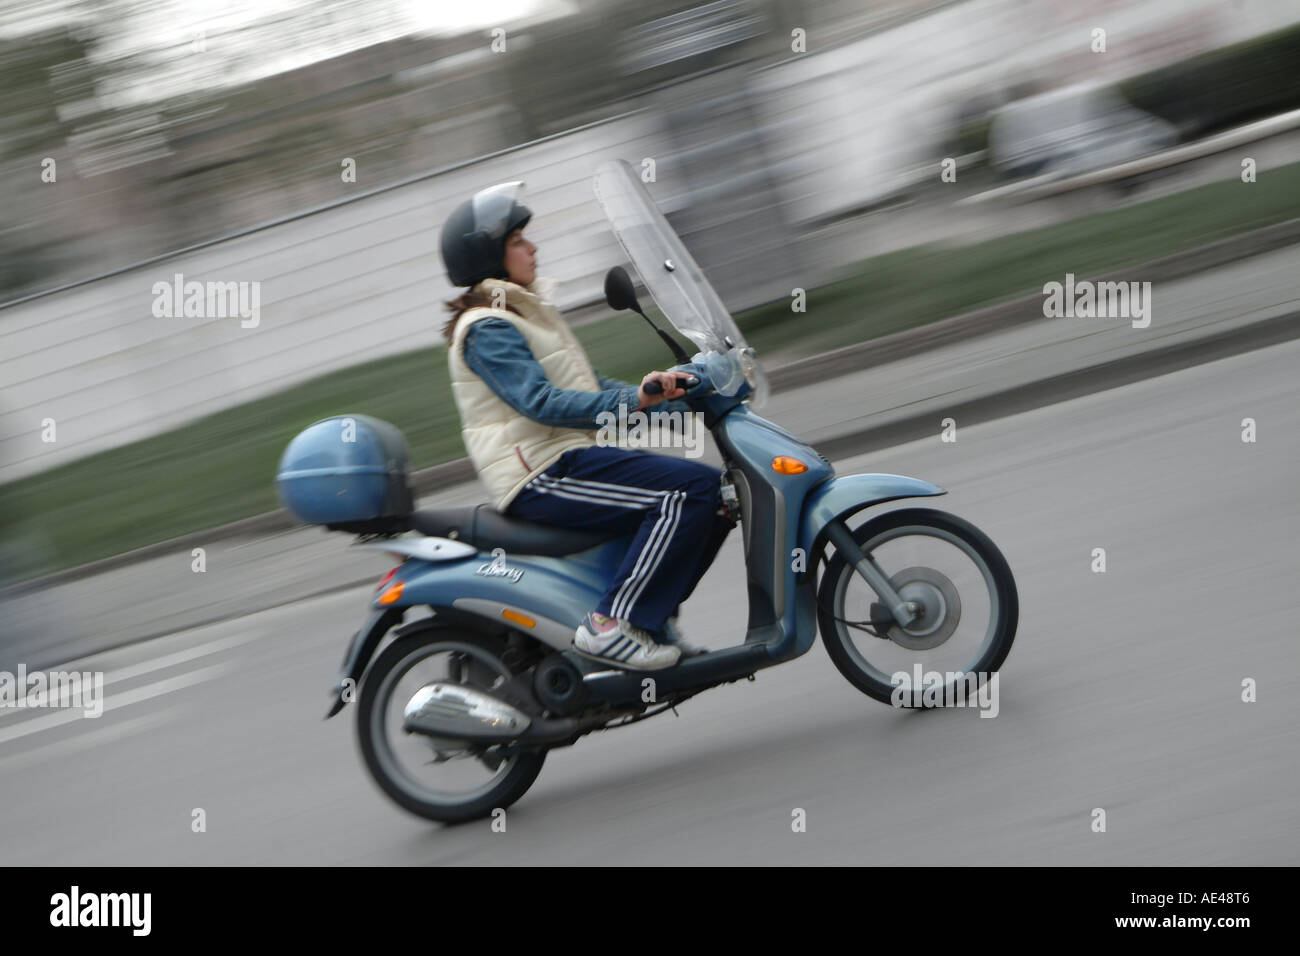 person riding a city scooter, piaggio liberty, on the streets of